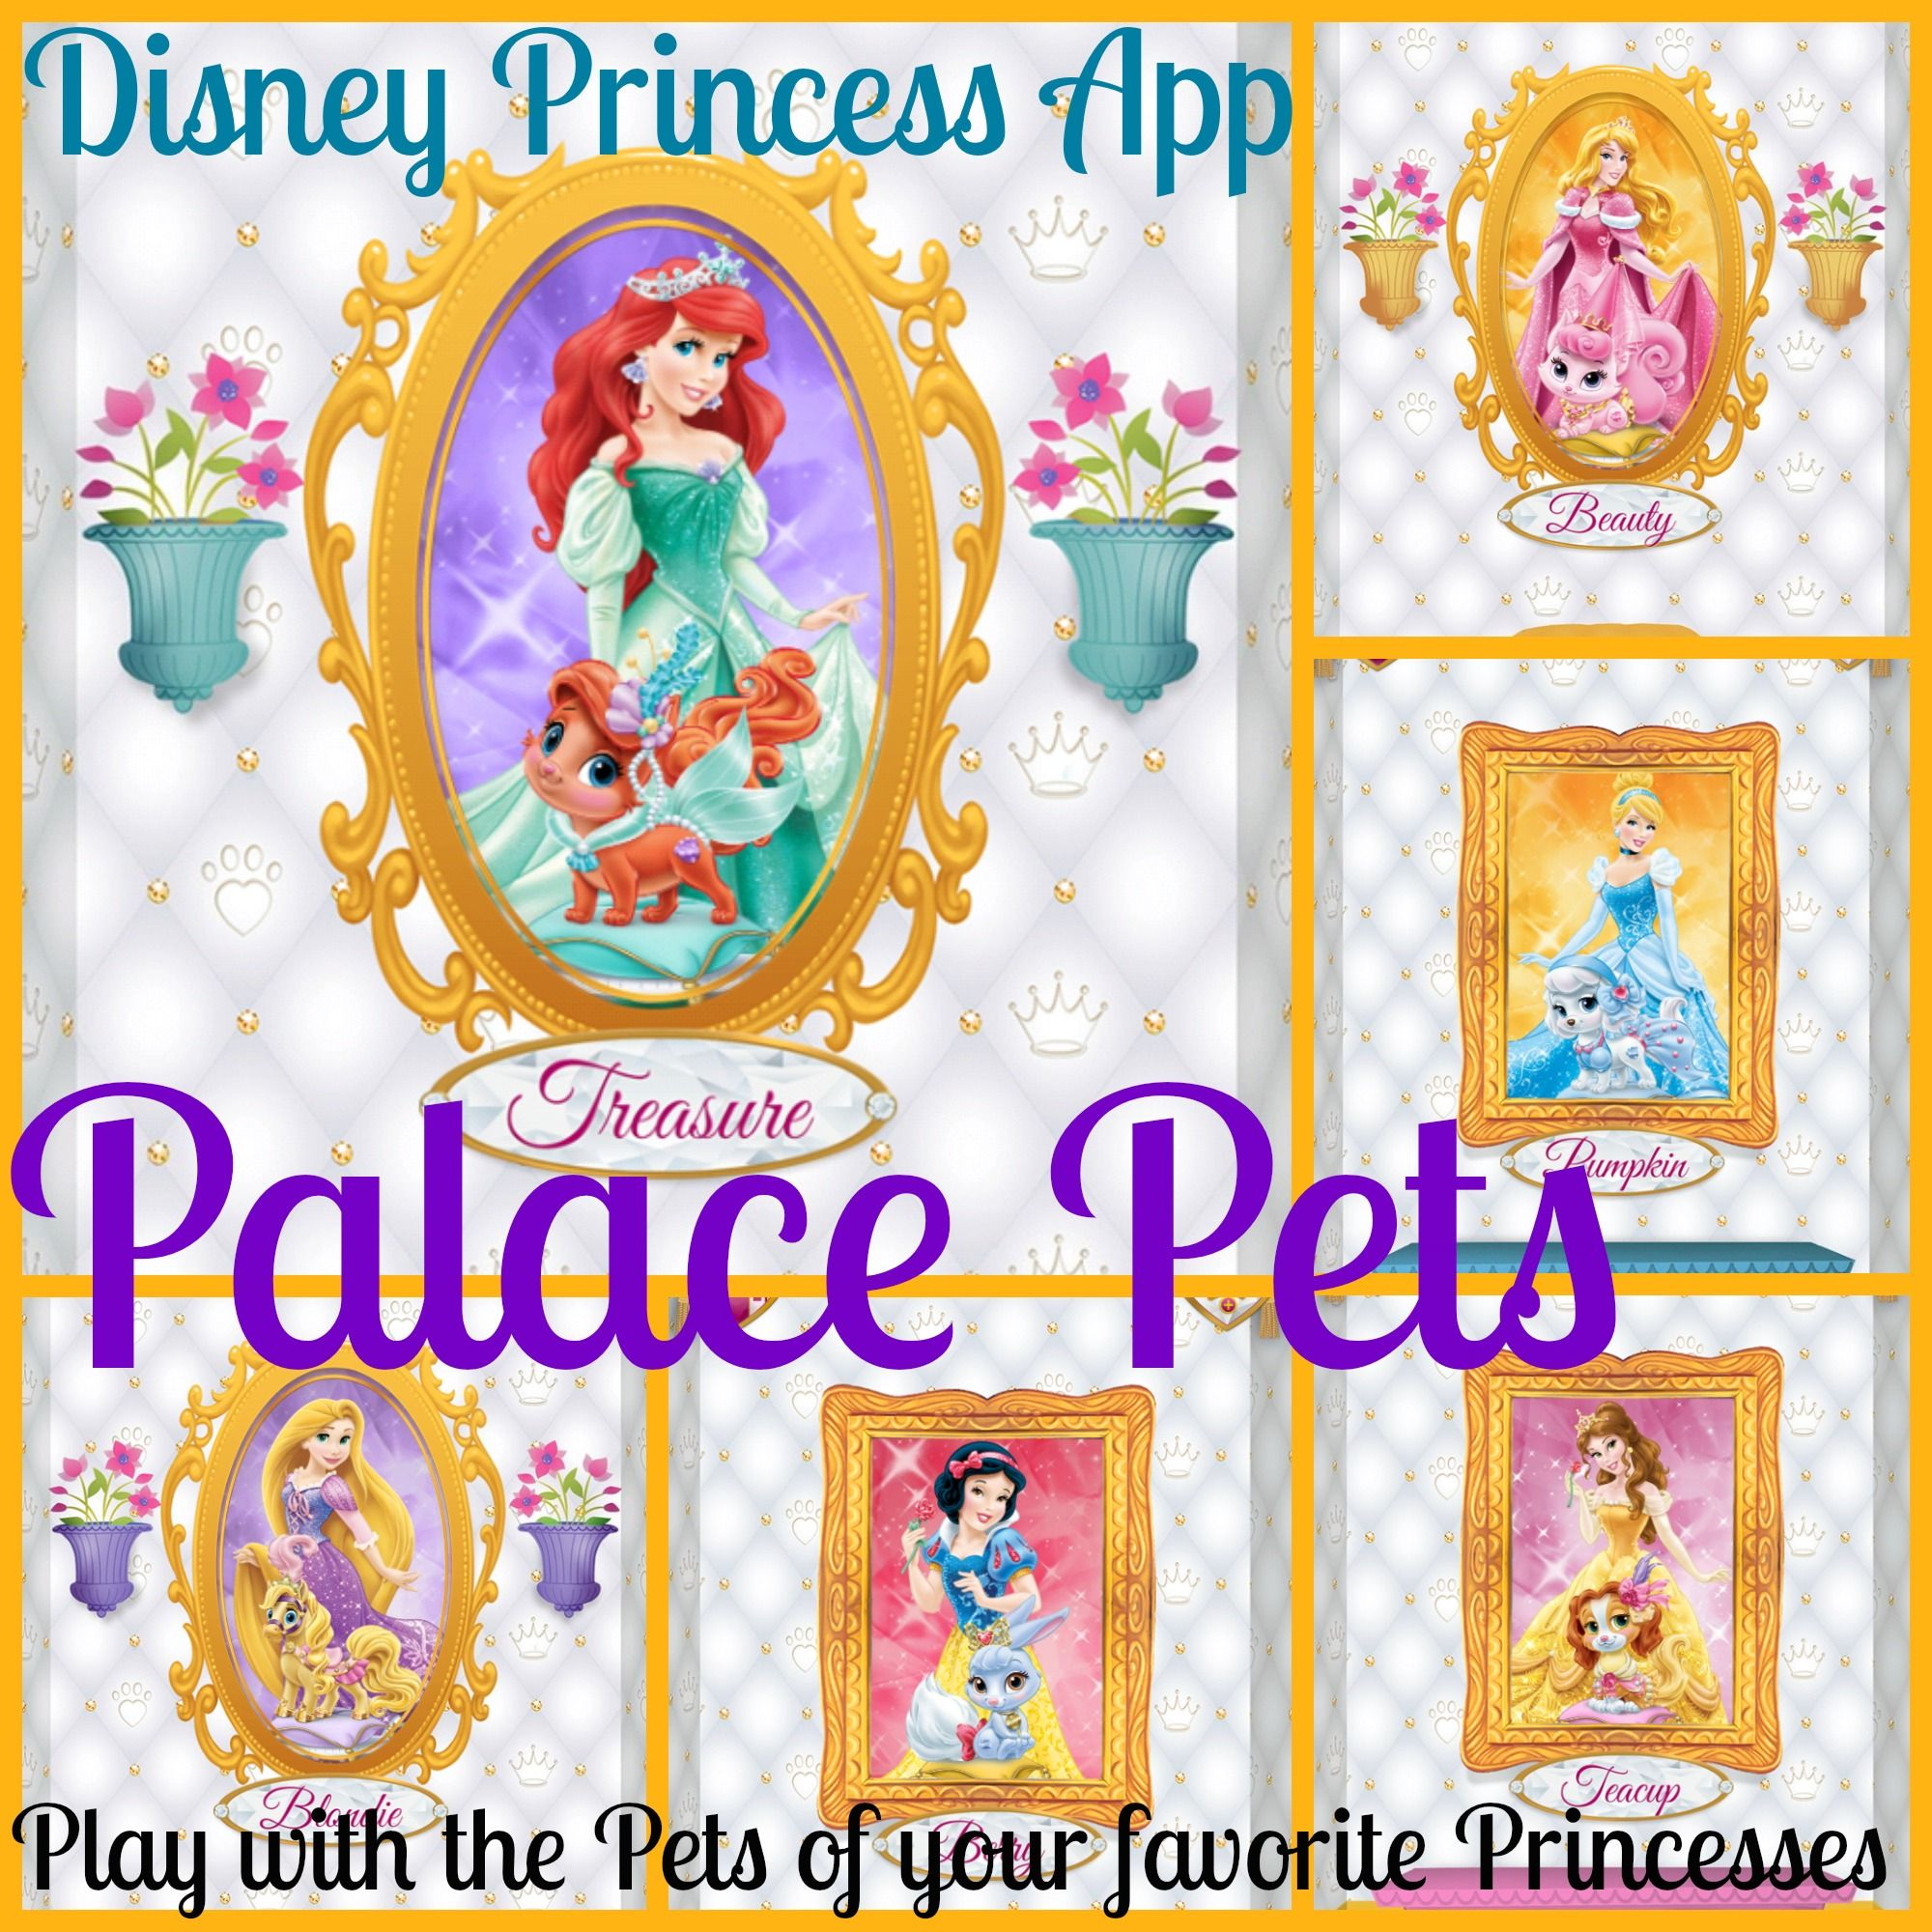 Disney Princess Palace Pets Your Daughter Will Love This App You